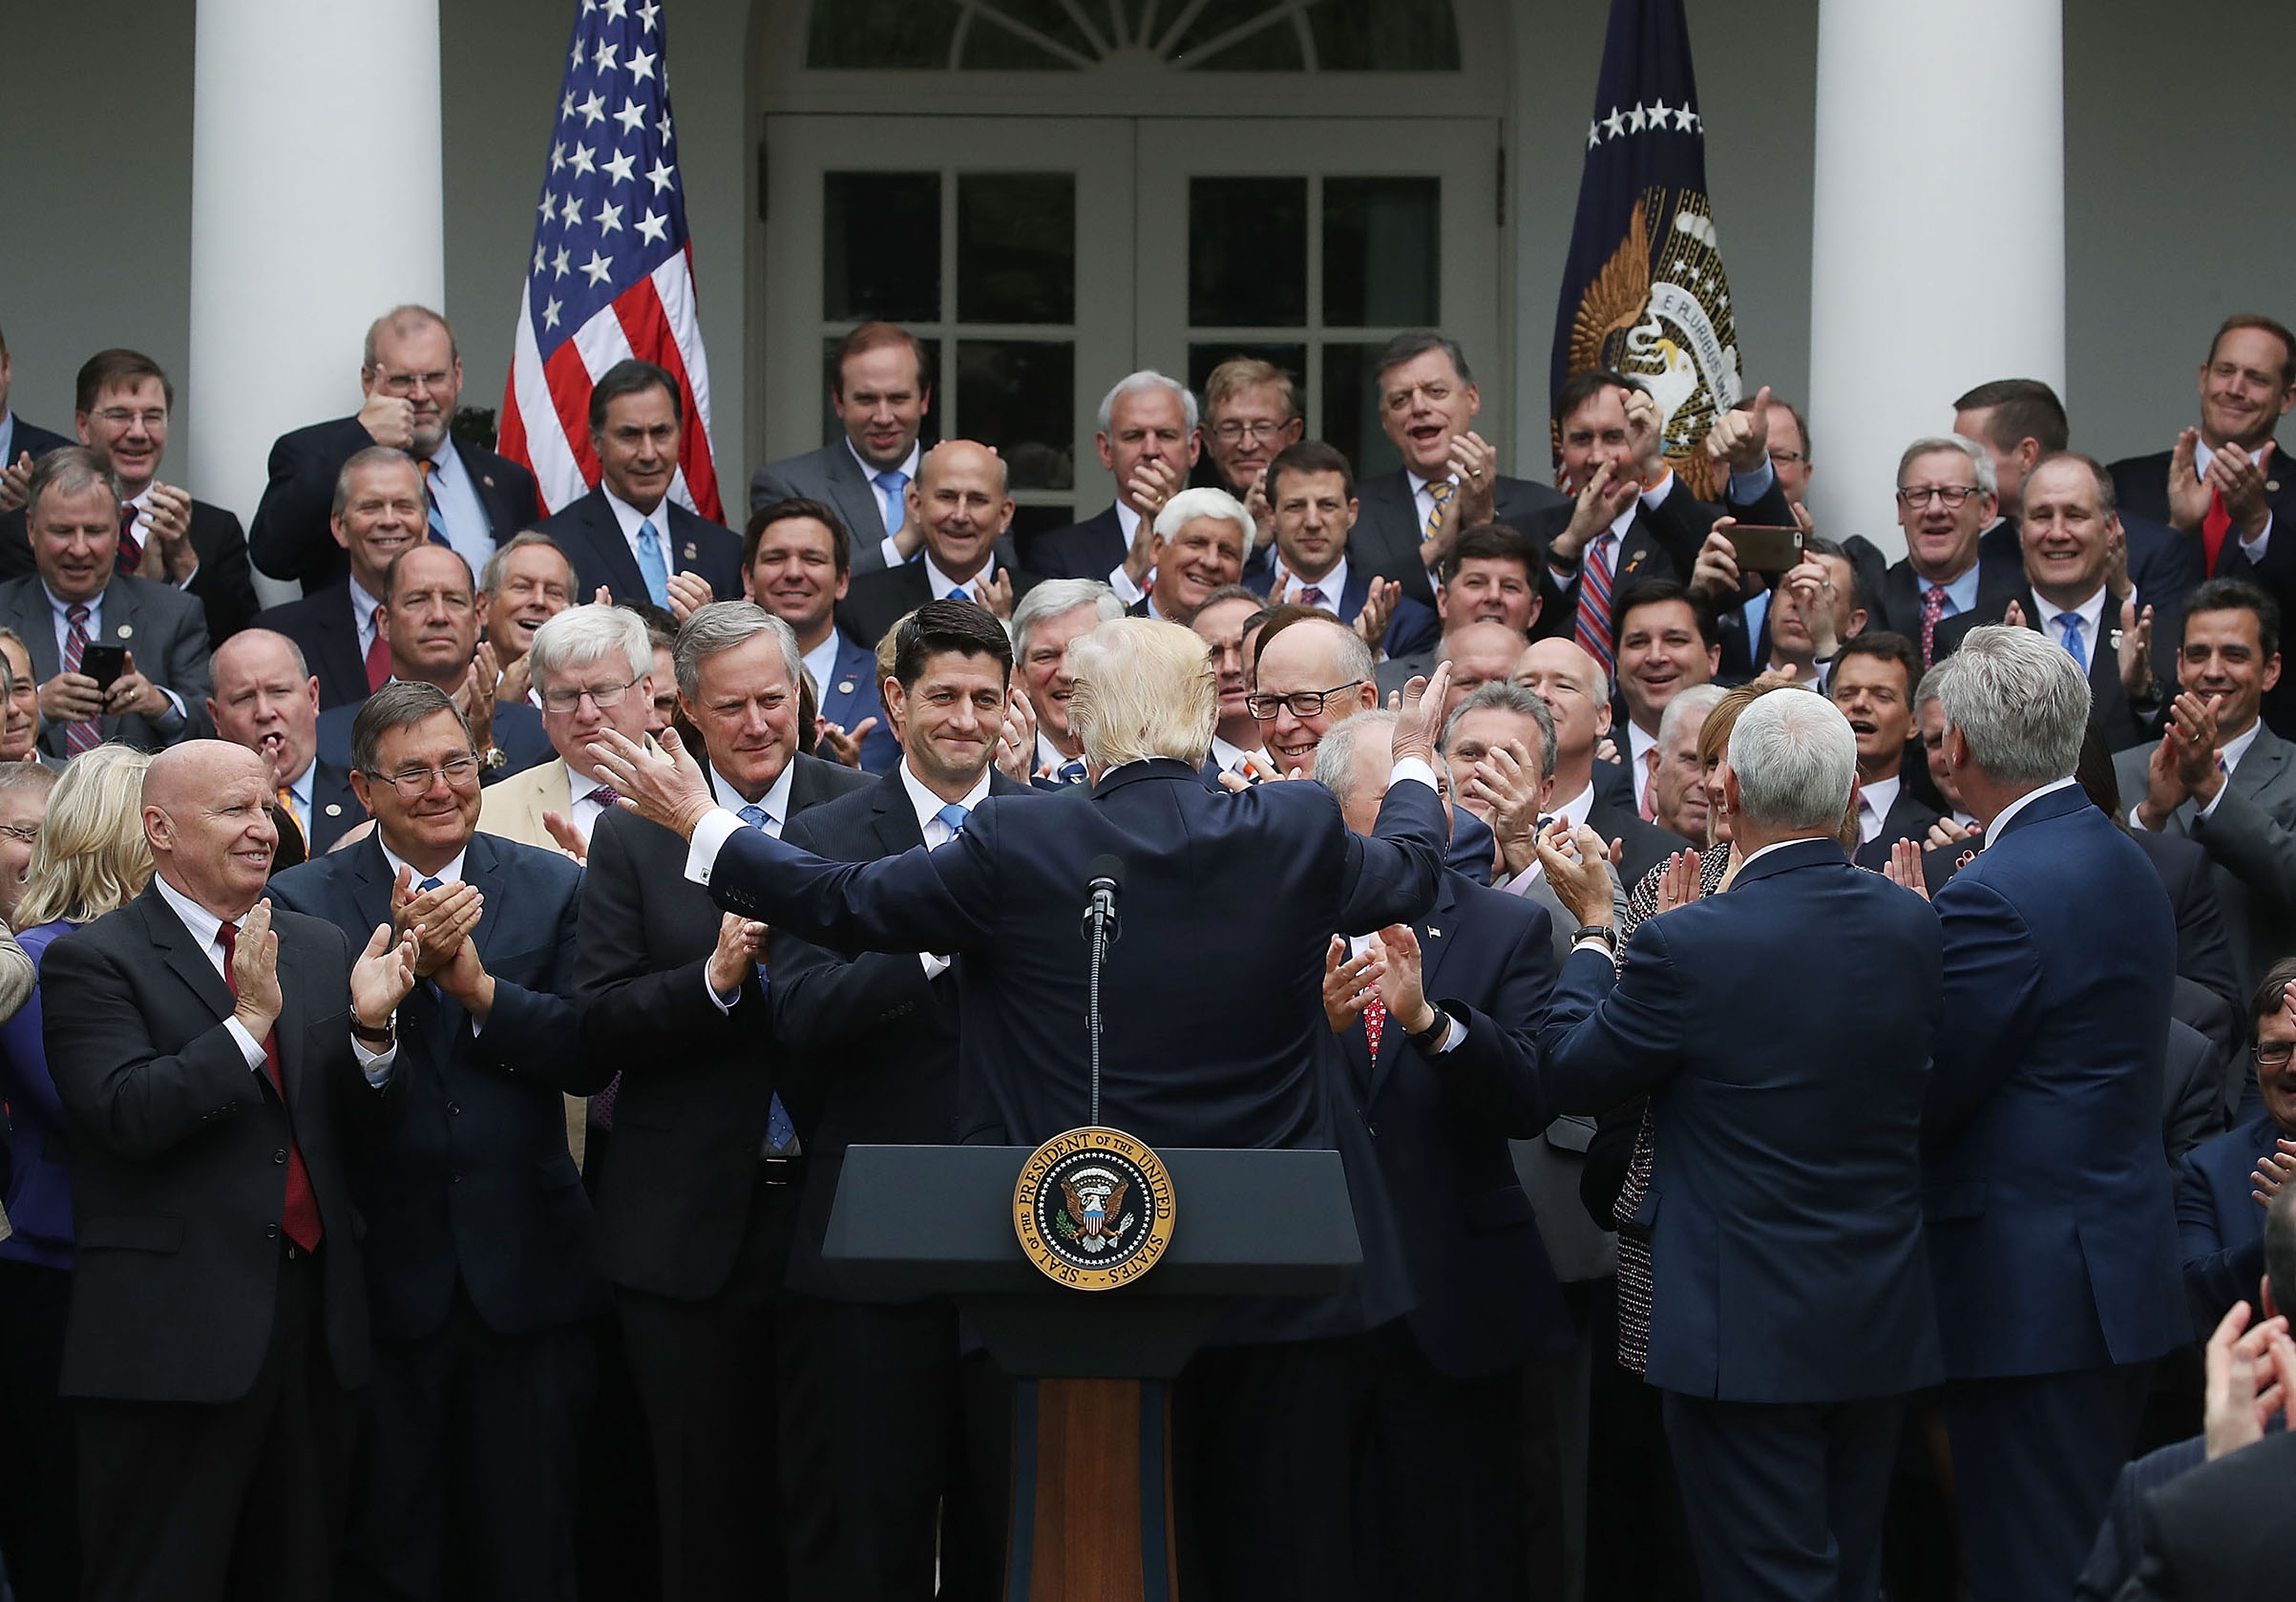 President Donald Trump congratulates House Republicans after they passed legislation aimed at repealing and replacing ObamaCare on May 4, 2017.